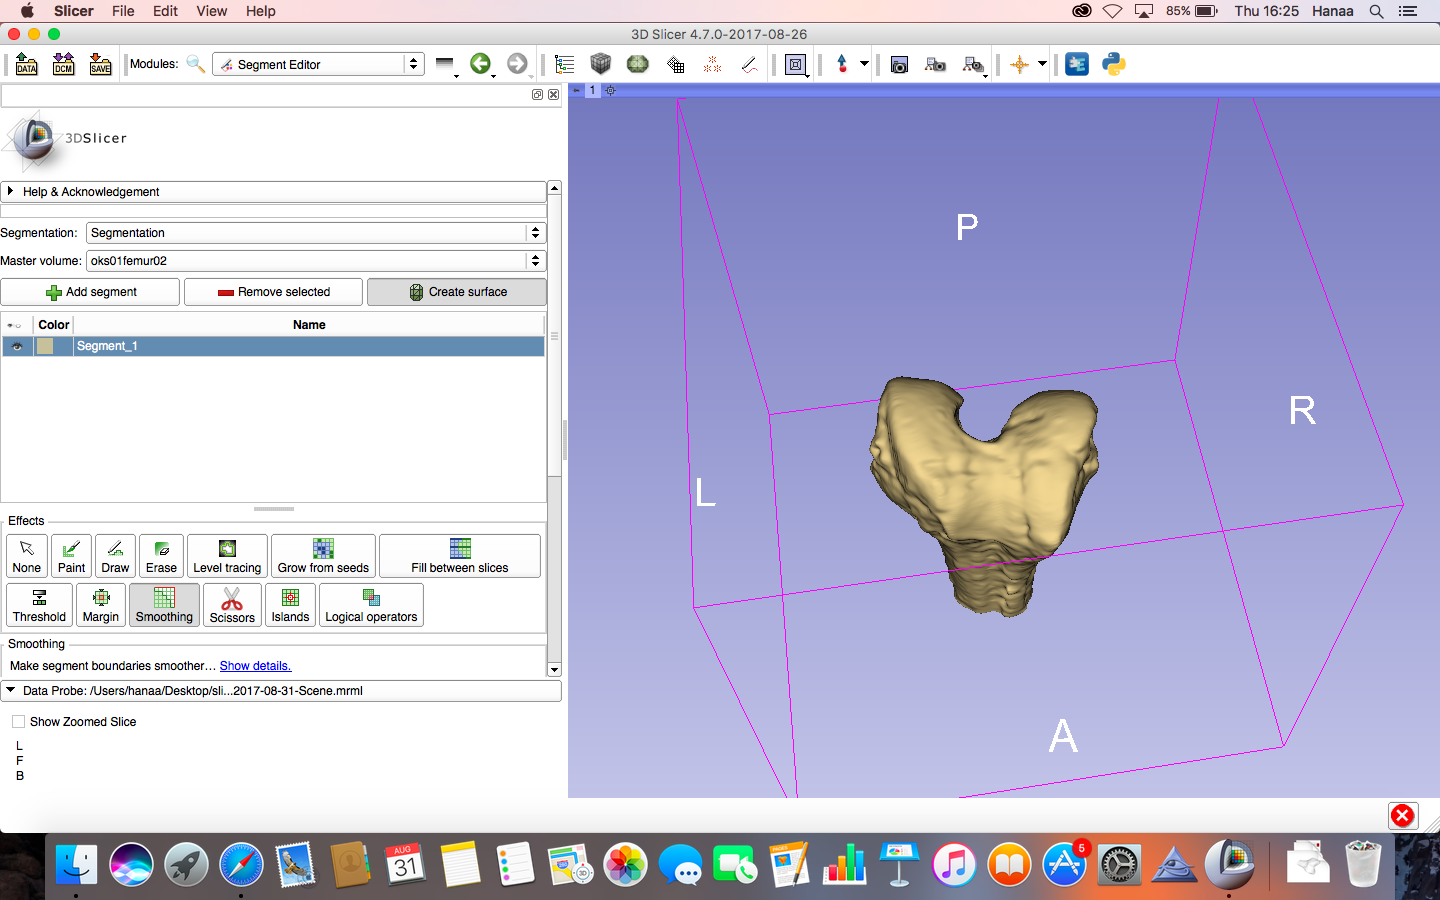 Bone segmentation to create 3D-printable STL - Support - 3D Slicer